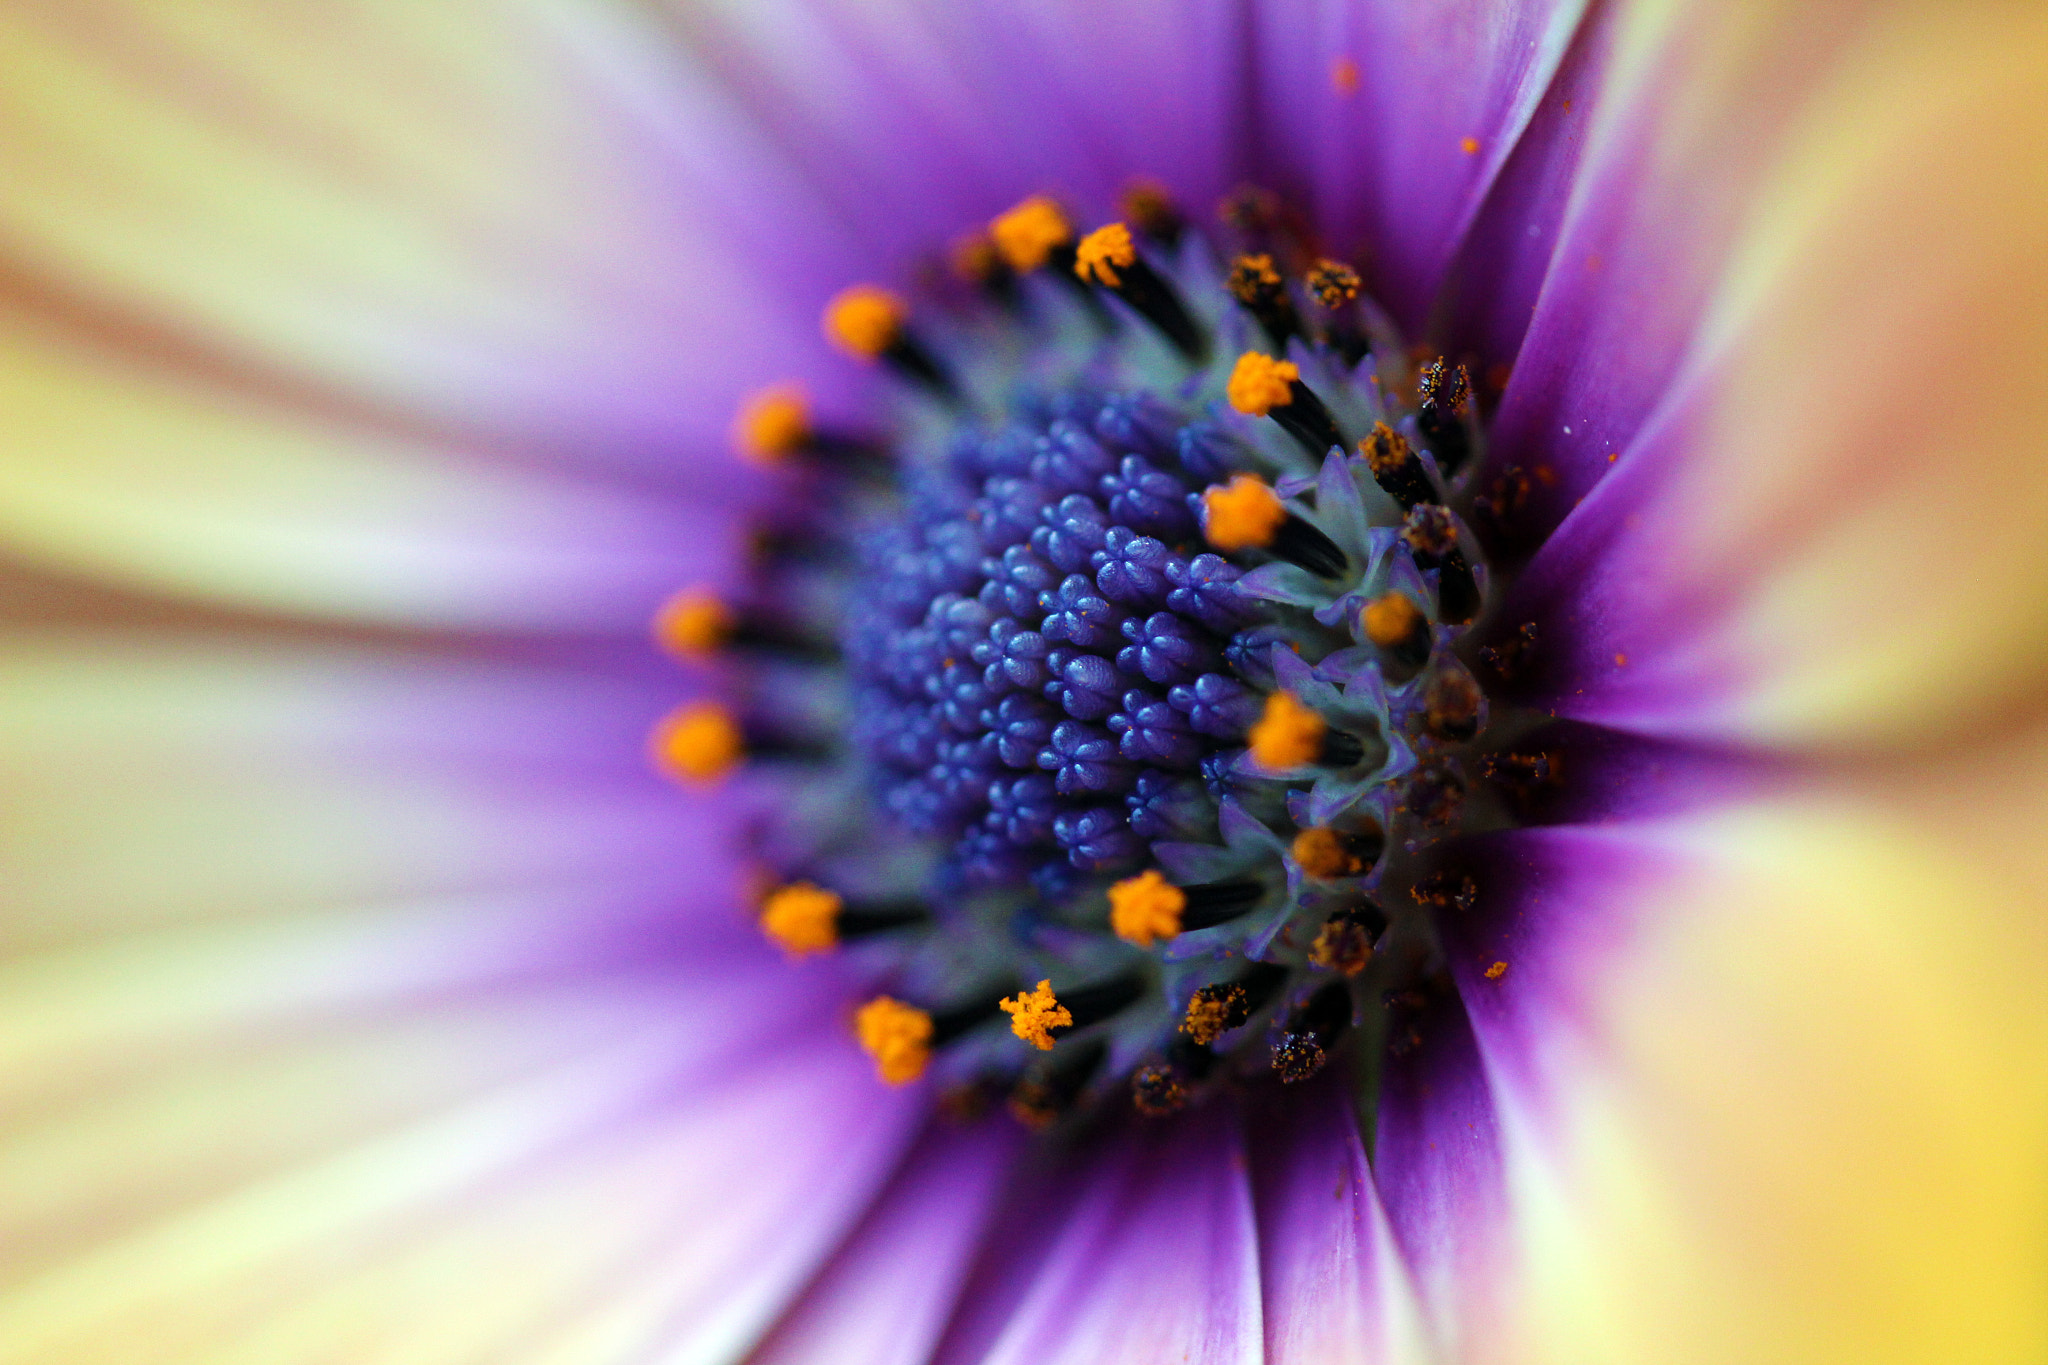 Photograph flower by Irene Soxsmith on 500px